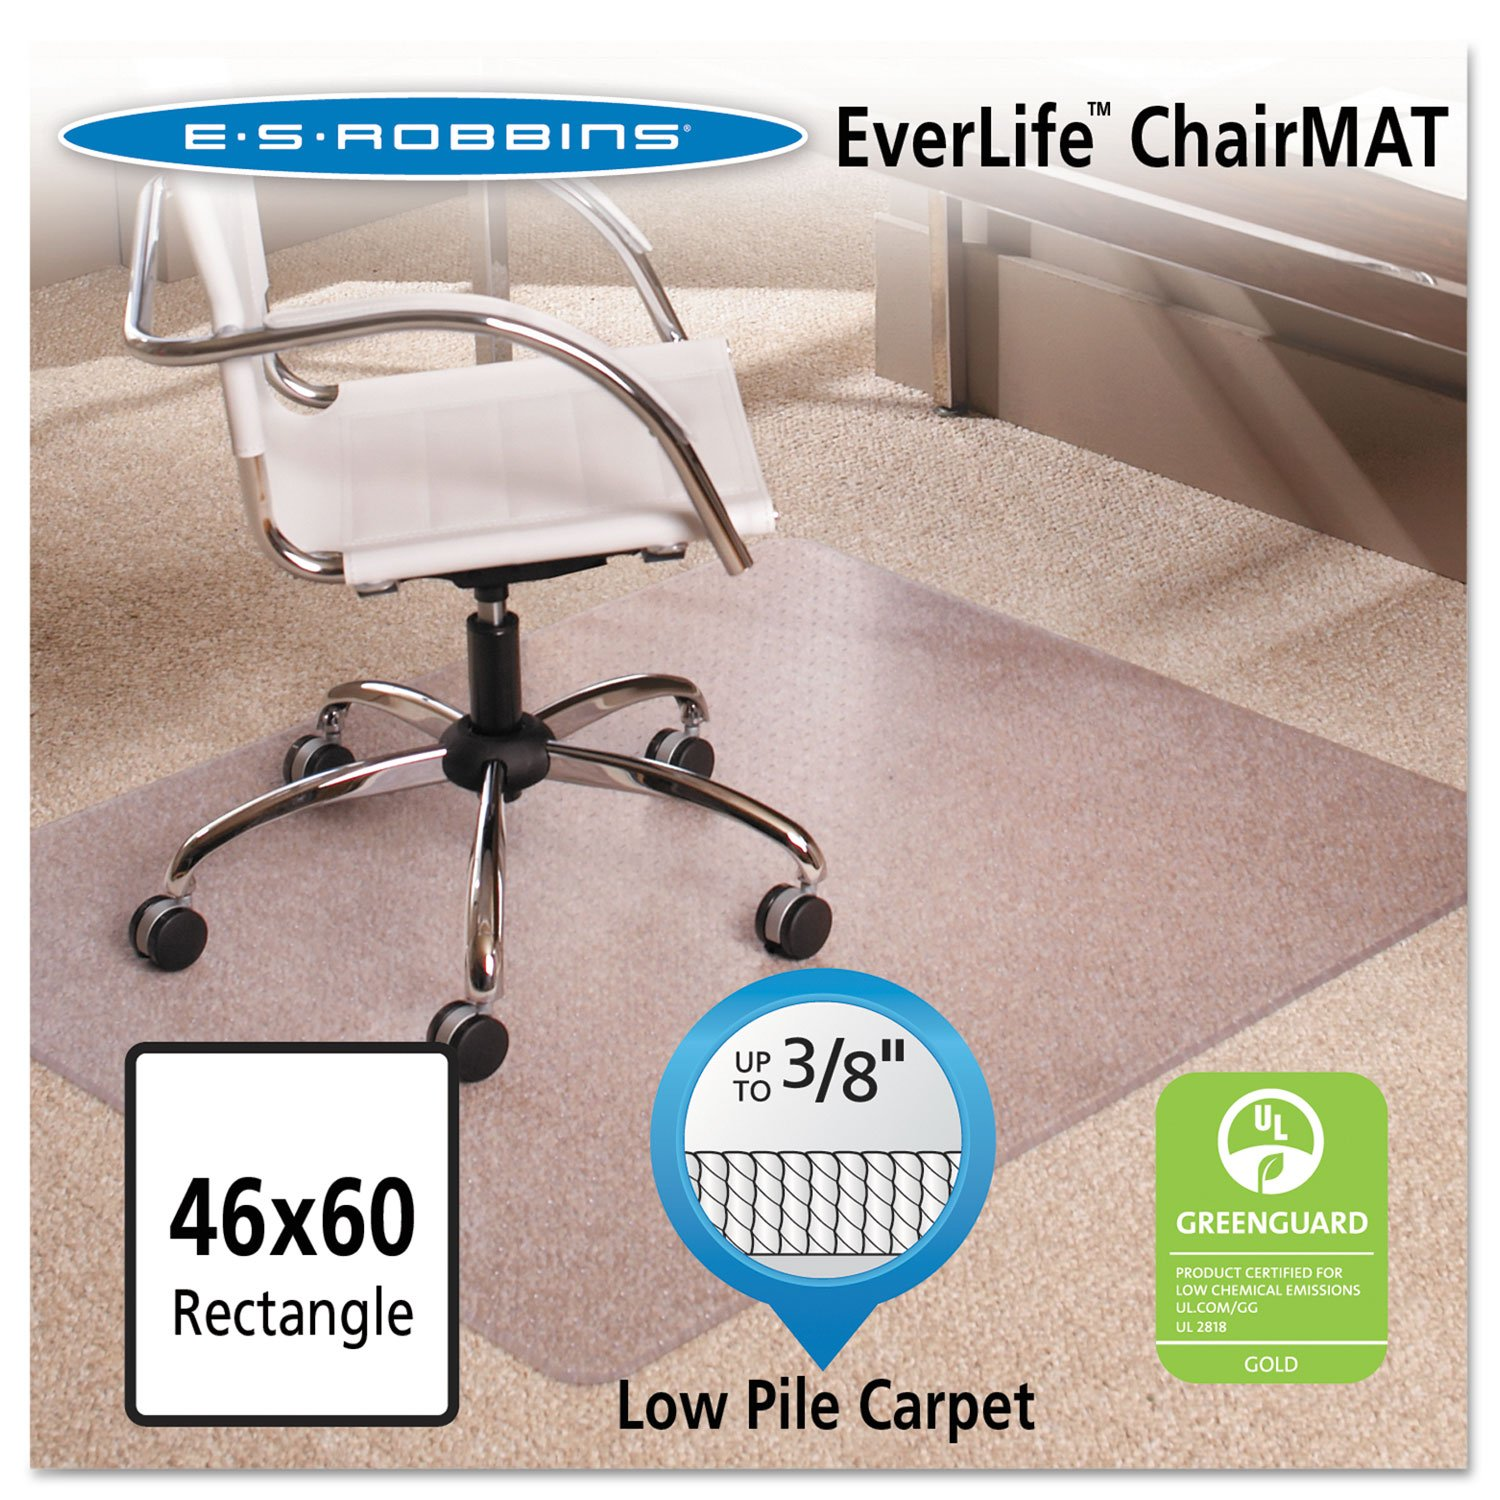 ES Robbins 128371 46x60 Rectangle Chair Mat, Multi-Task Series AnchorBar for Carpet up to 3/8''